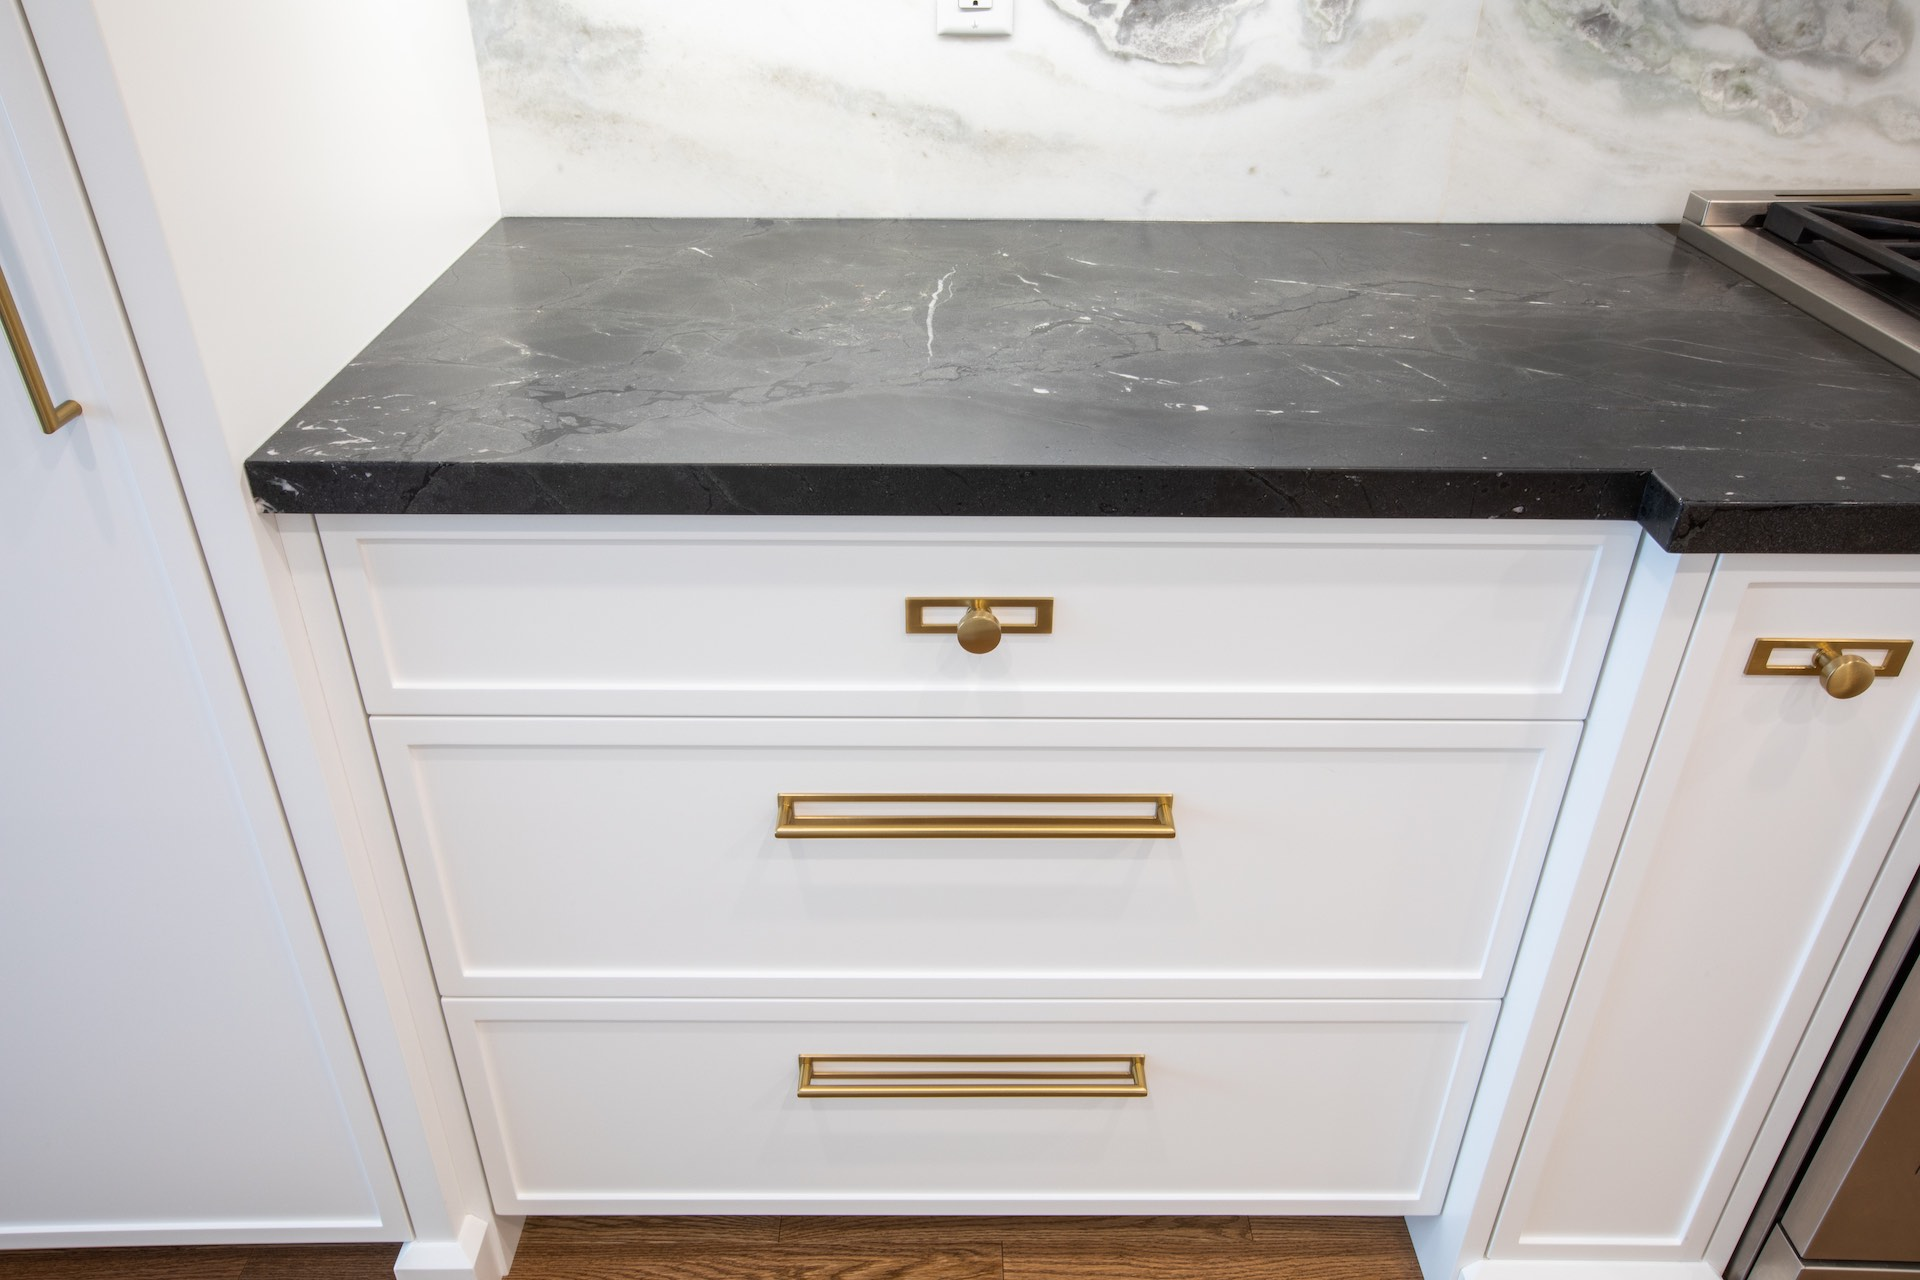 Black marble counter with white kitchen drawers